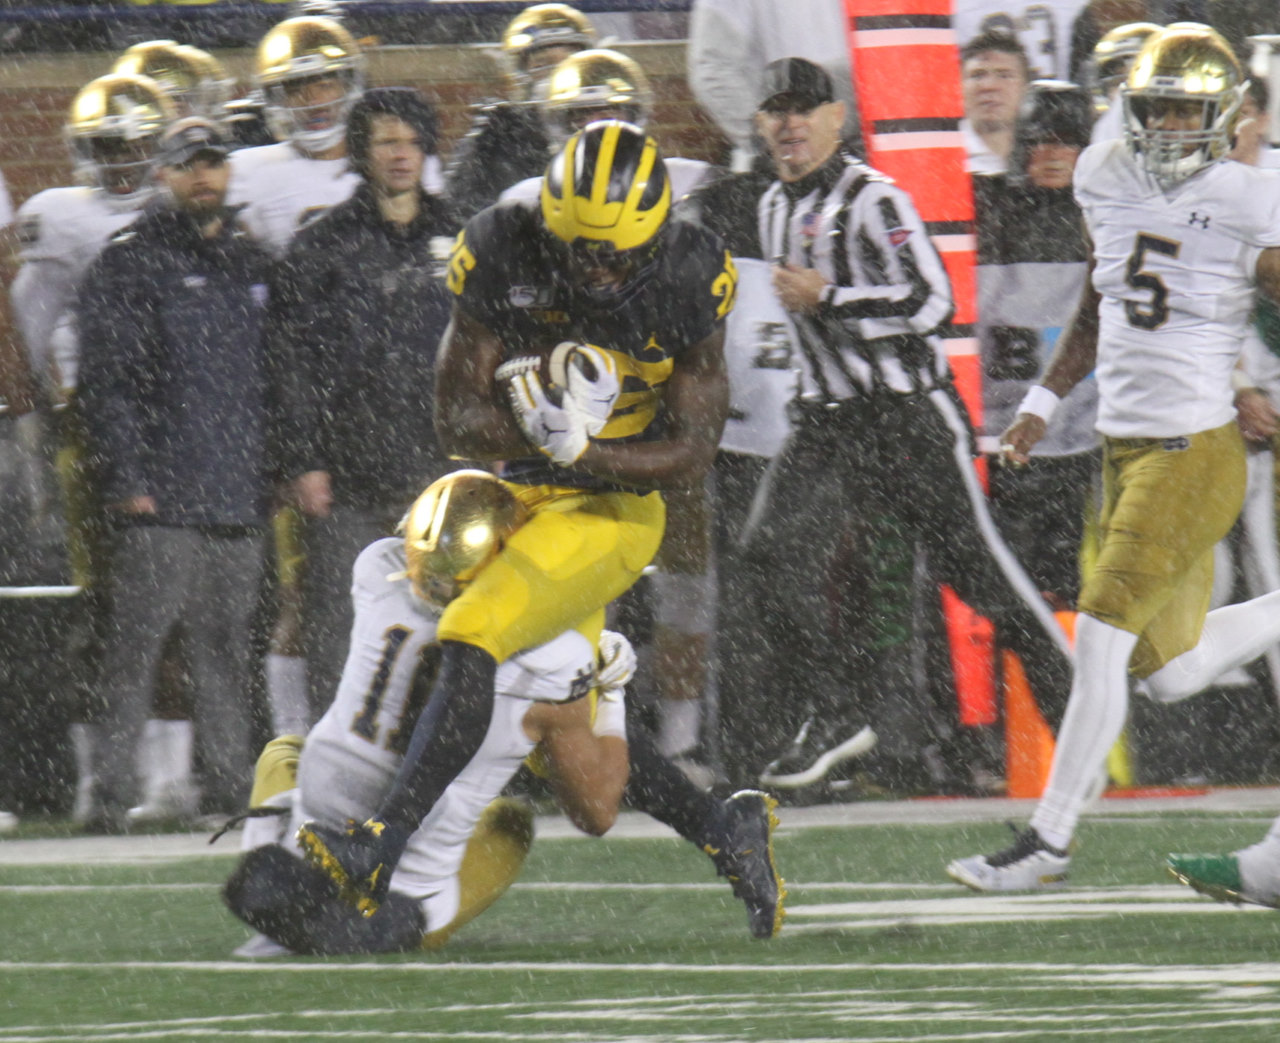 2019_08_Michigan45_NotreDame14_DCallihan-6